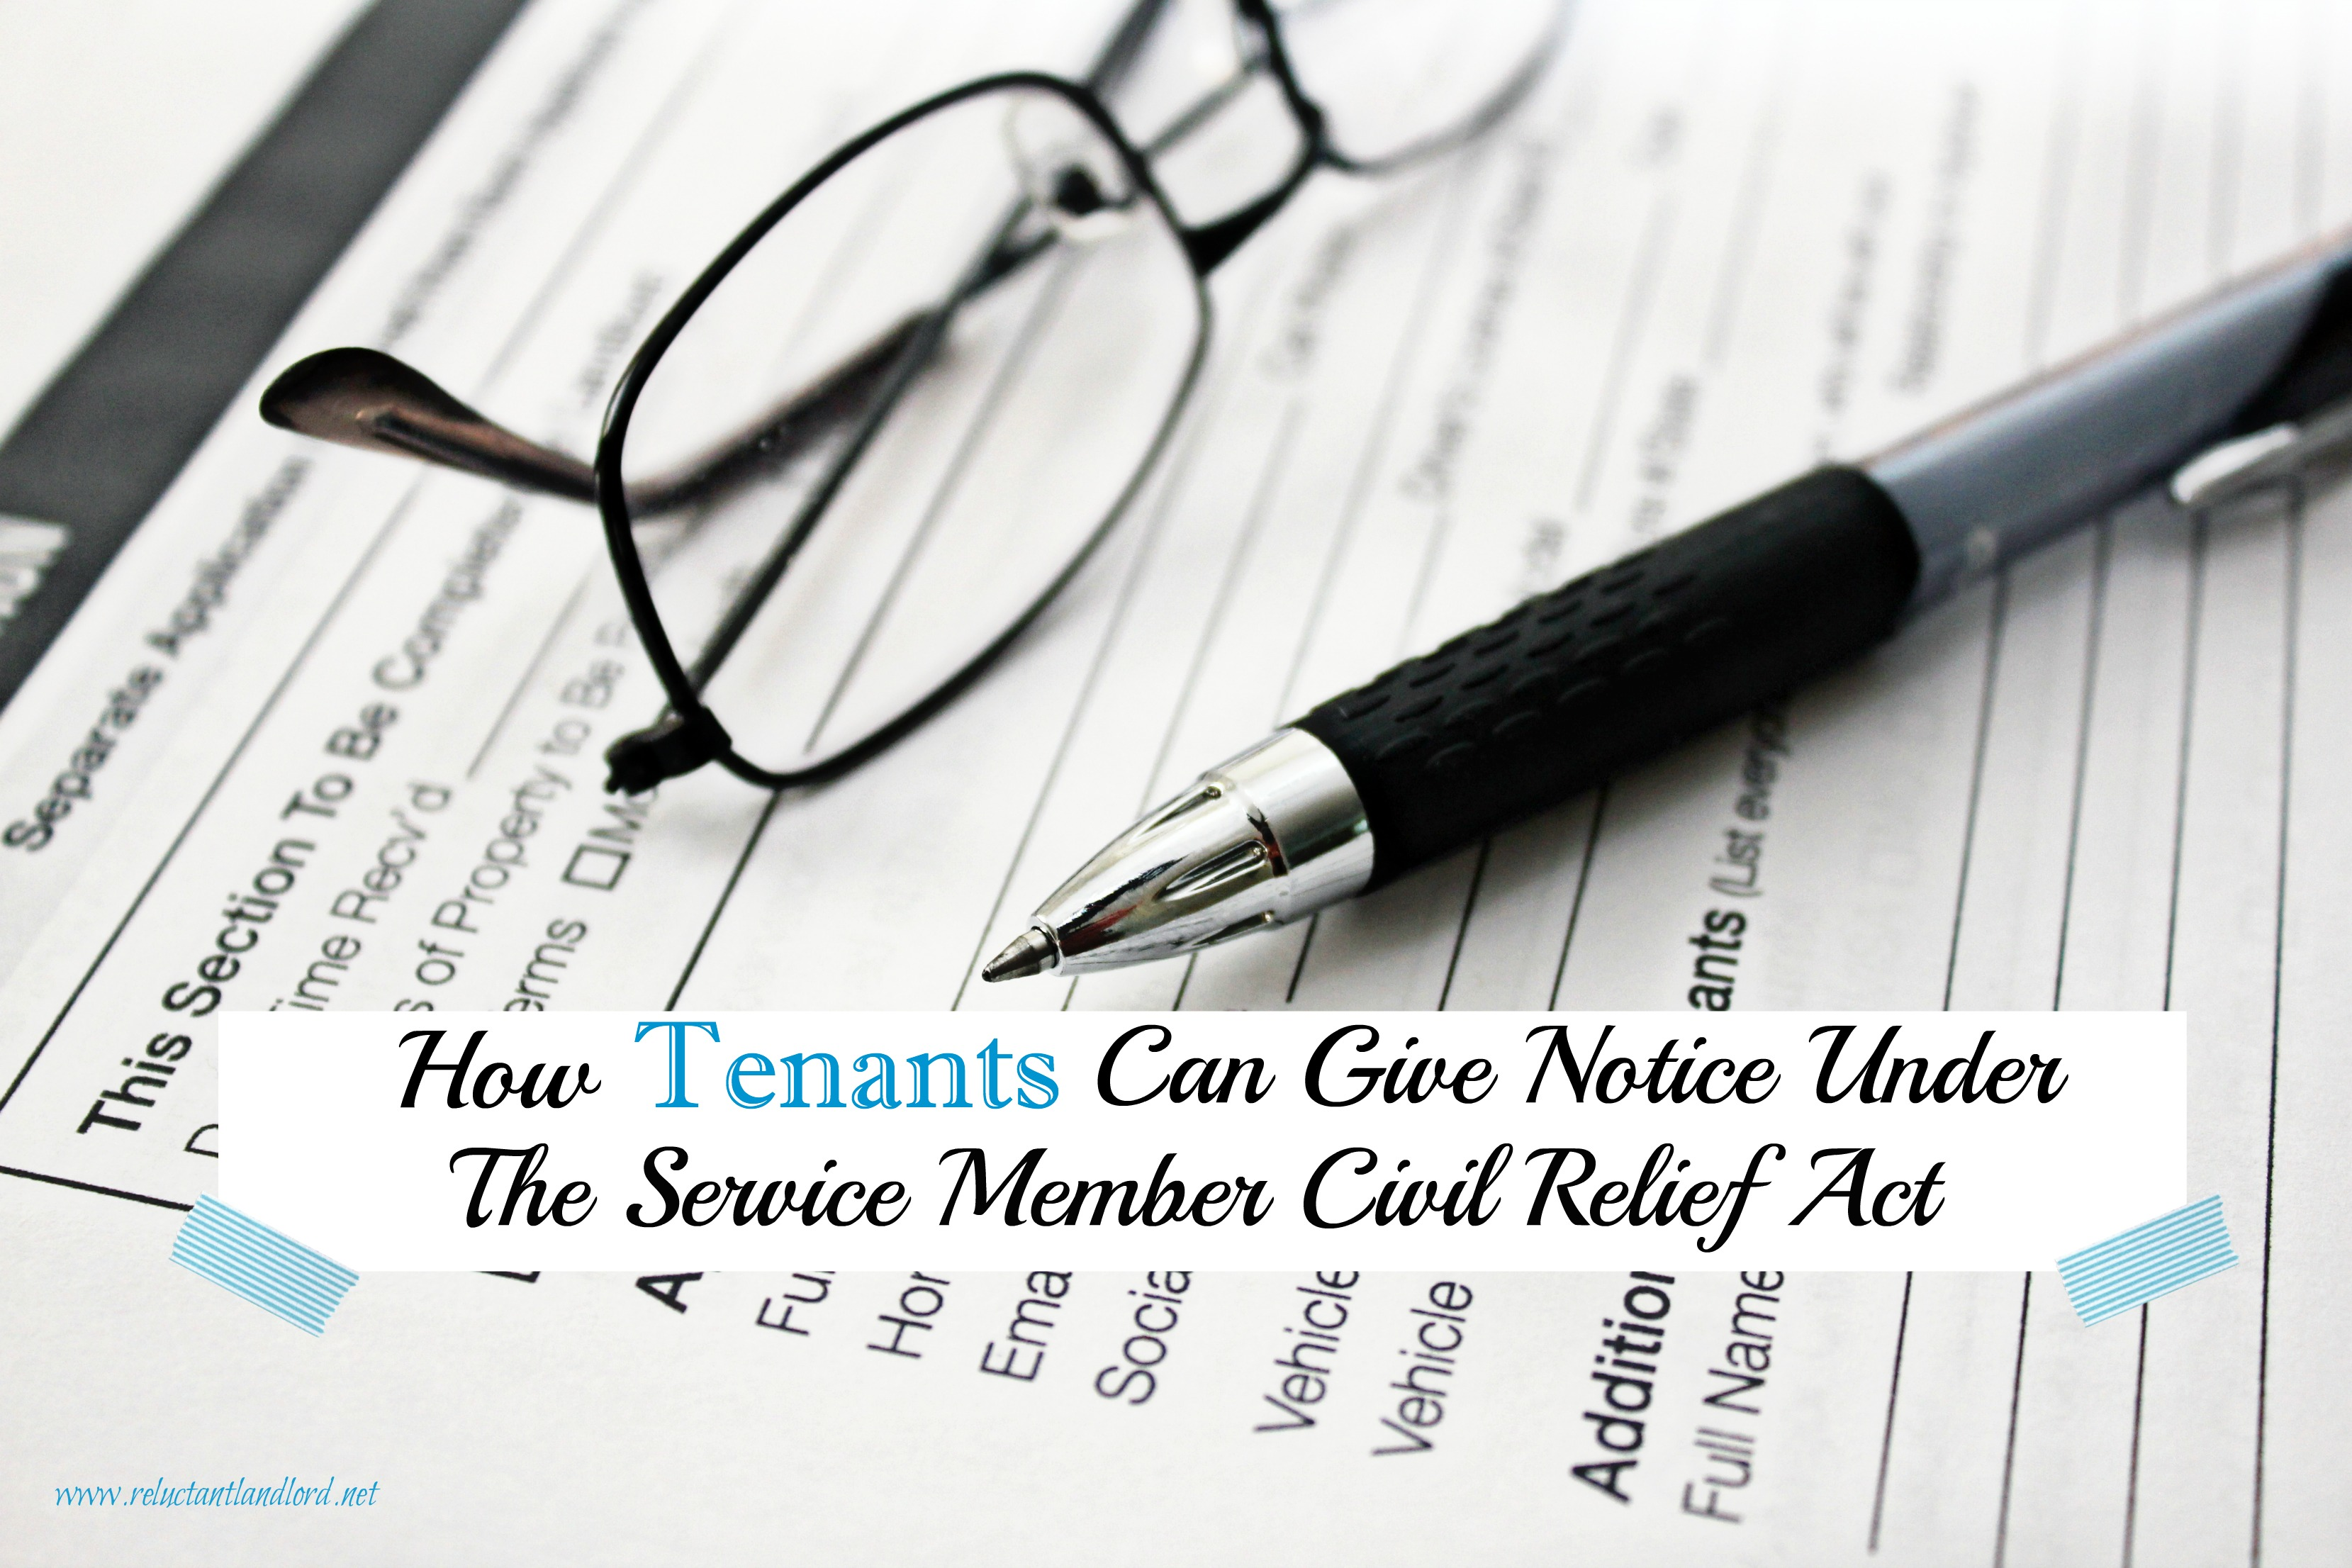 How Tenants Can Give Notice Under The Service Member Civil Relief Act